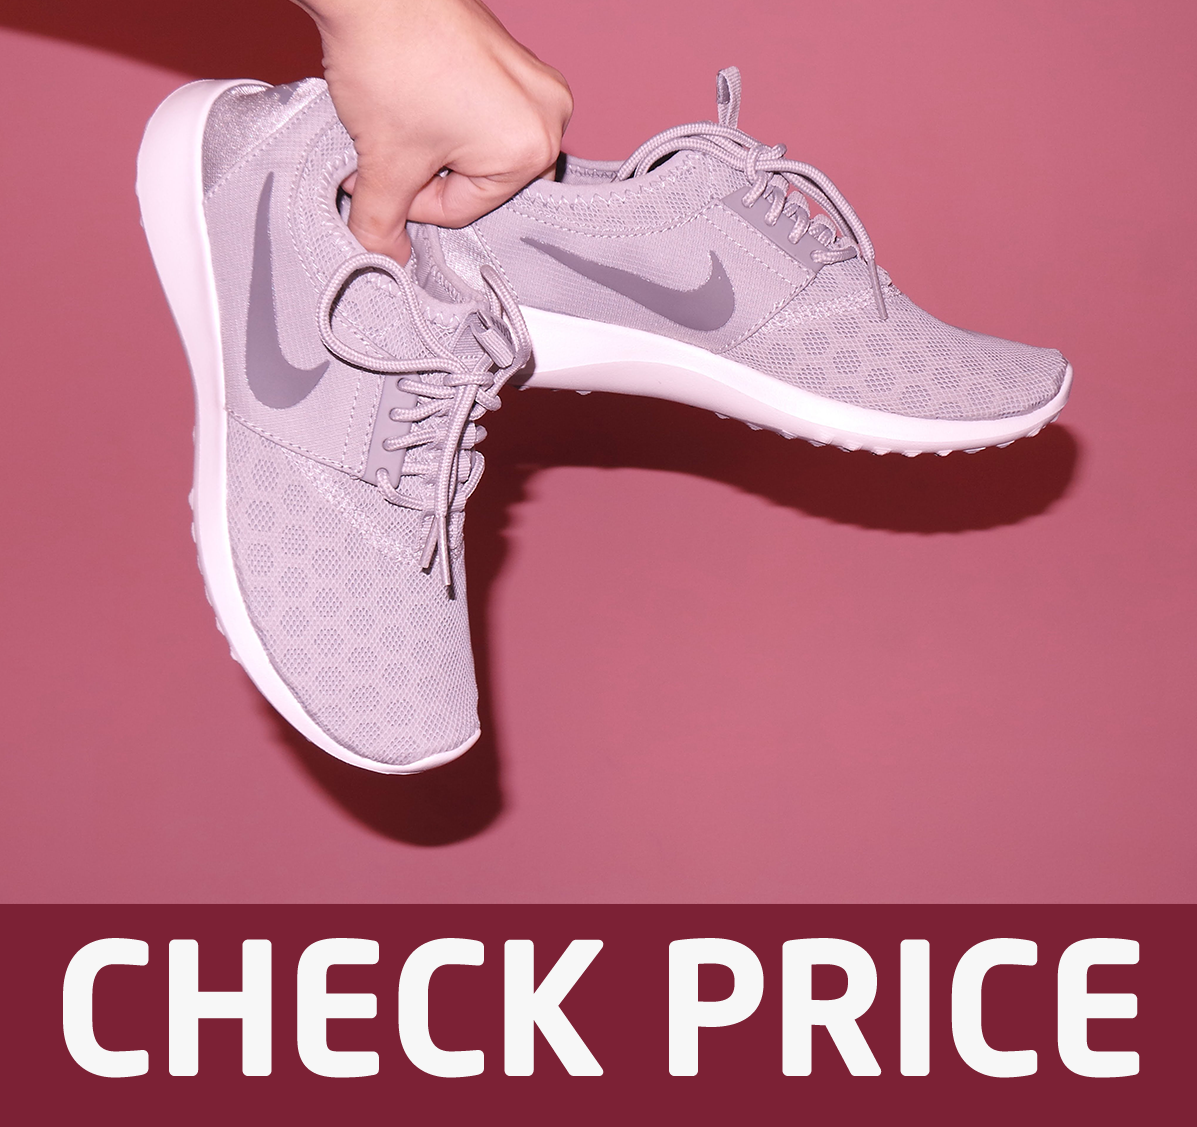 bc35395537c 10 Best Pink Sneakers to Buy in 2019  Reviews With Photos